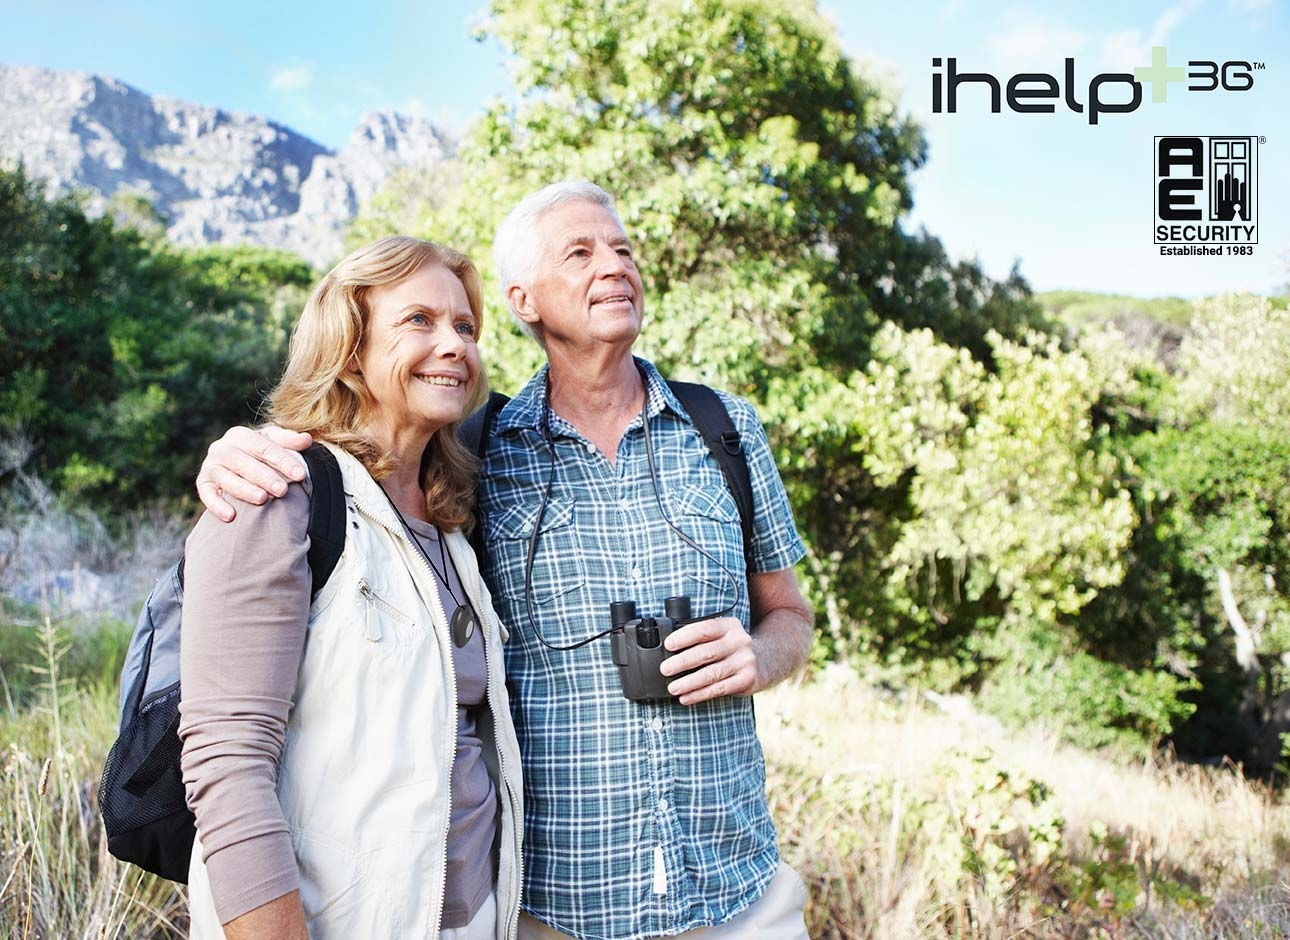 Couple outdoors walking with ihelp+3G